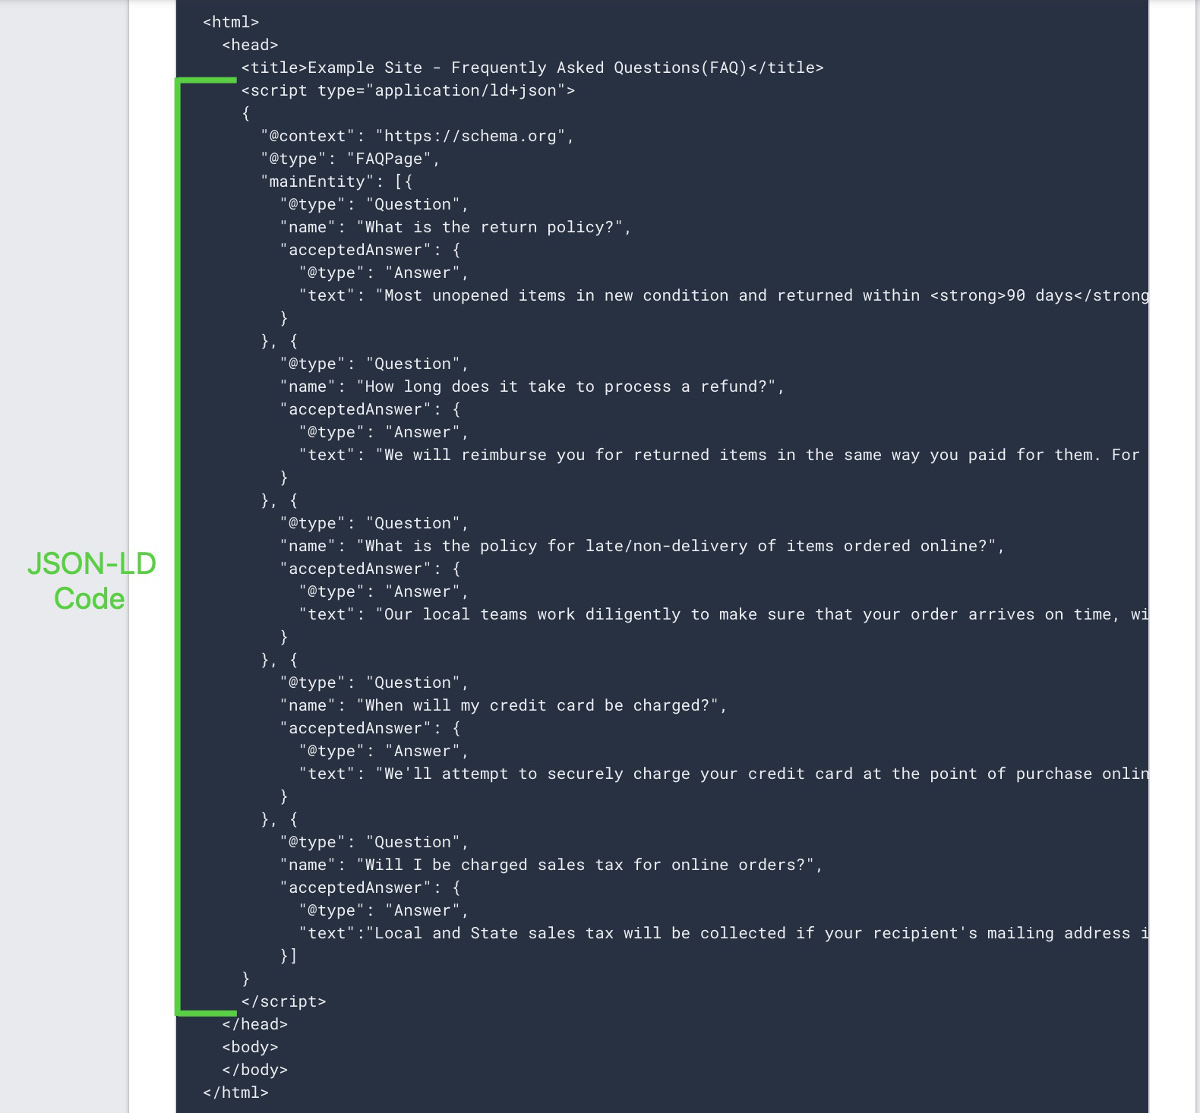 example of json ld markup for faqs